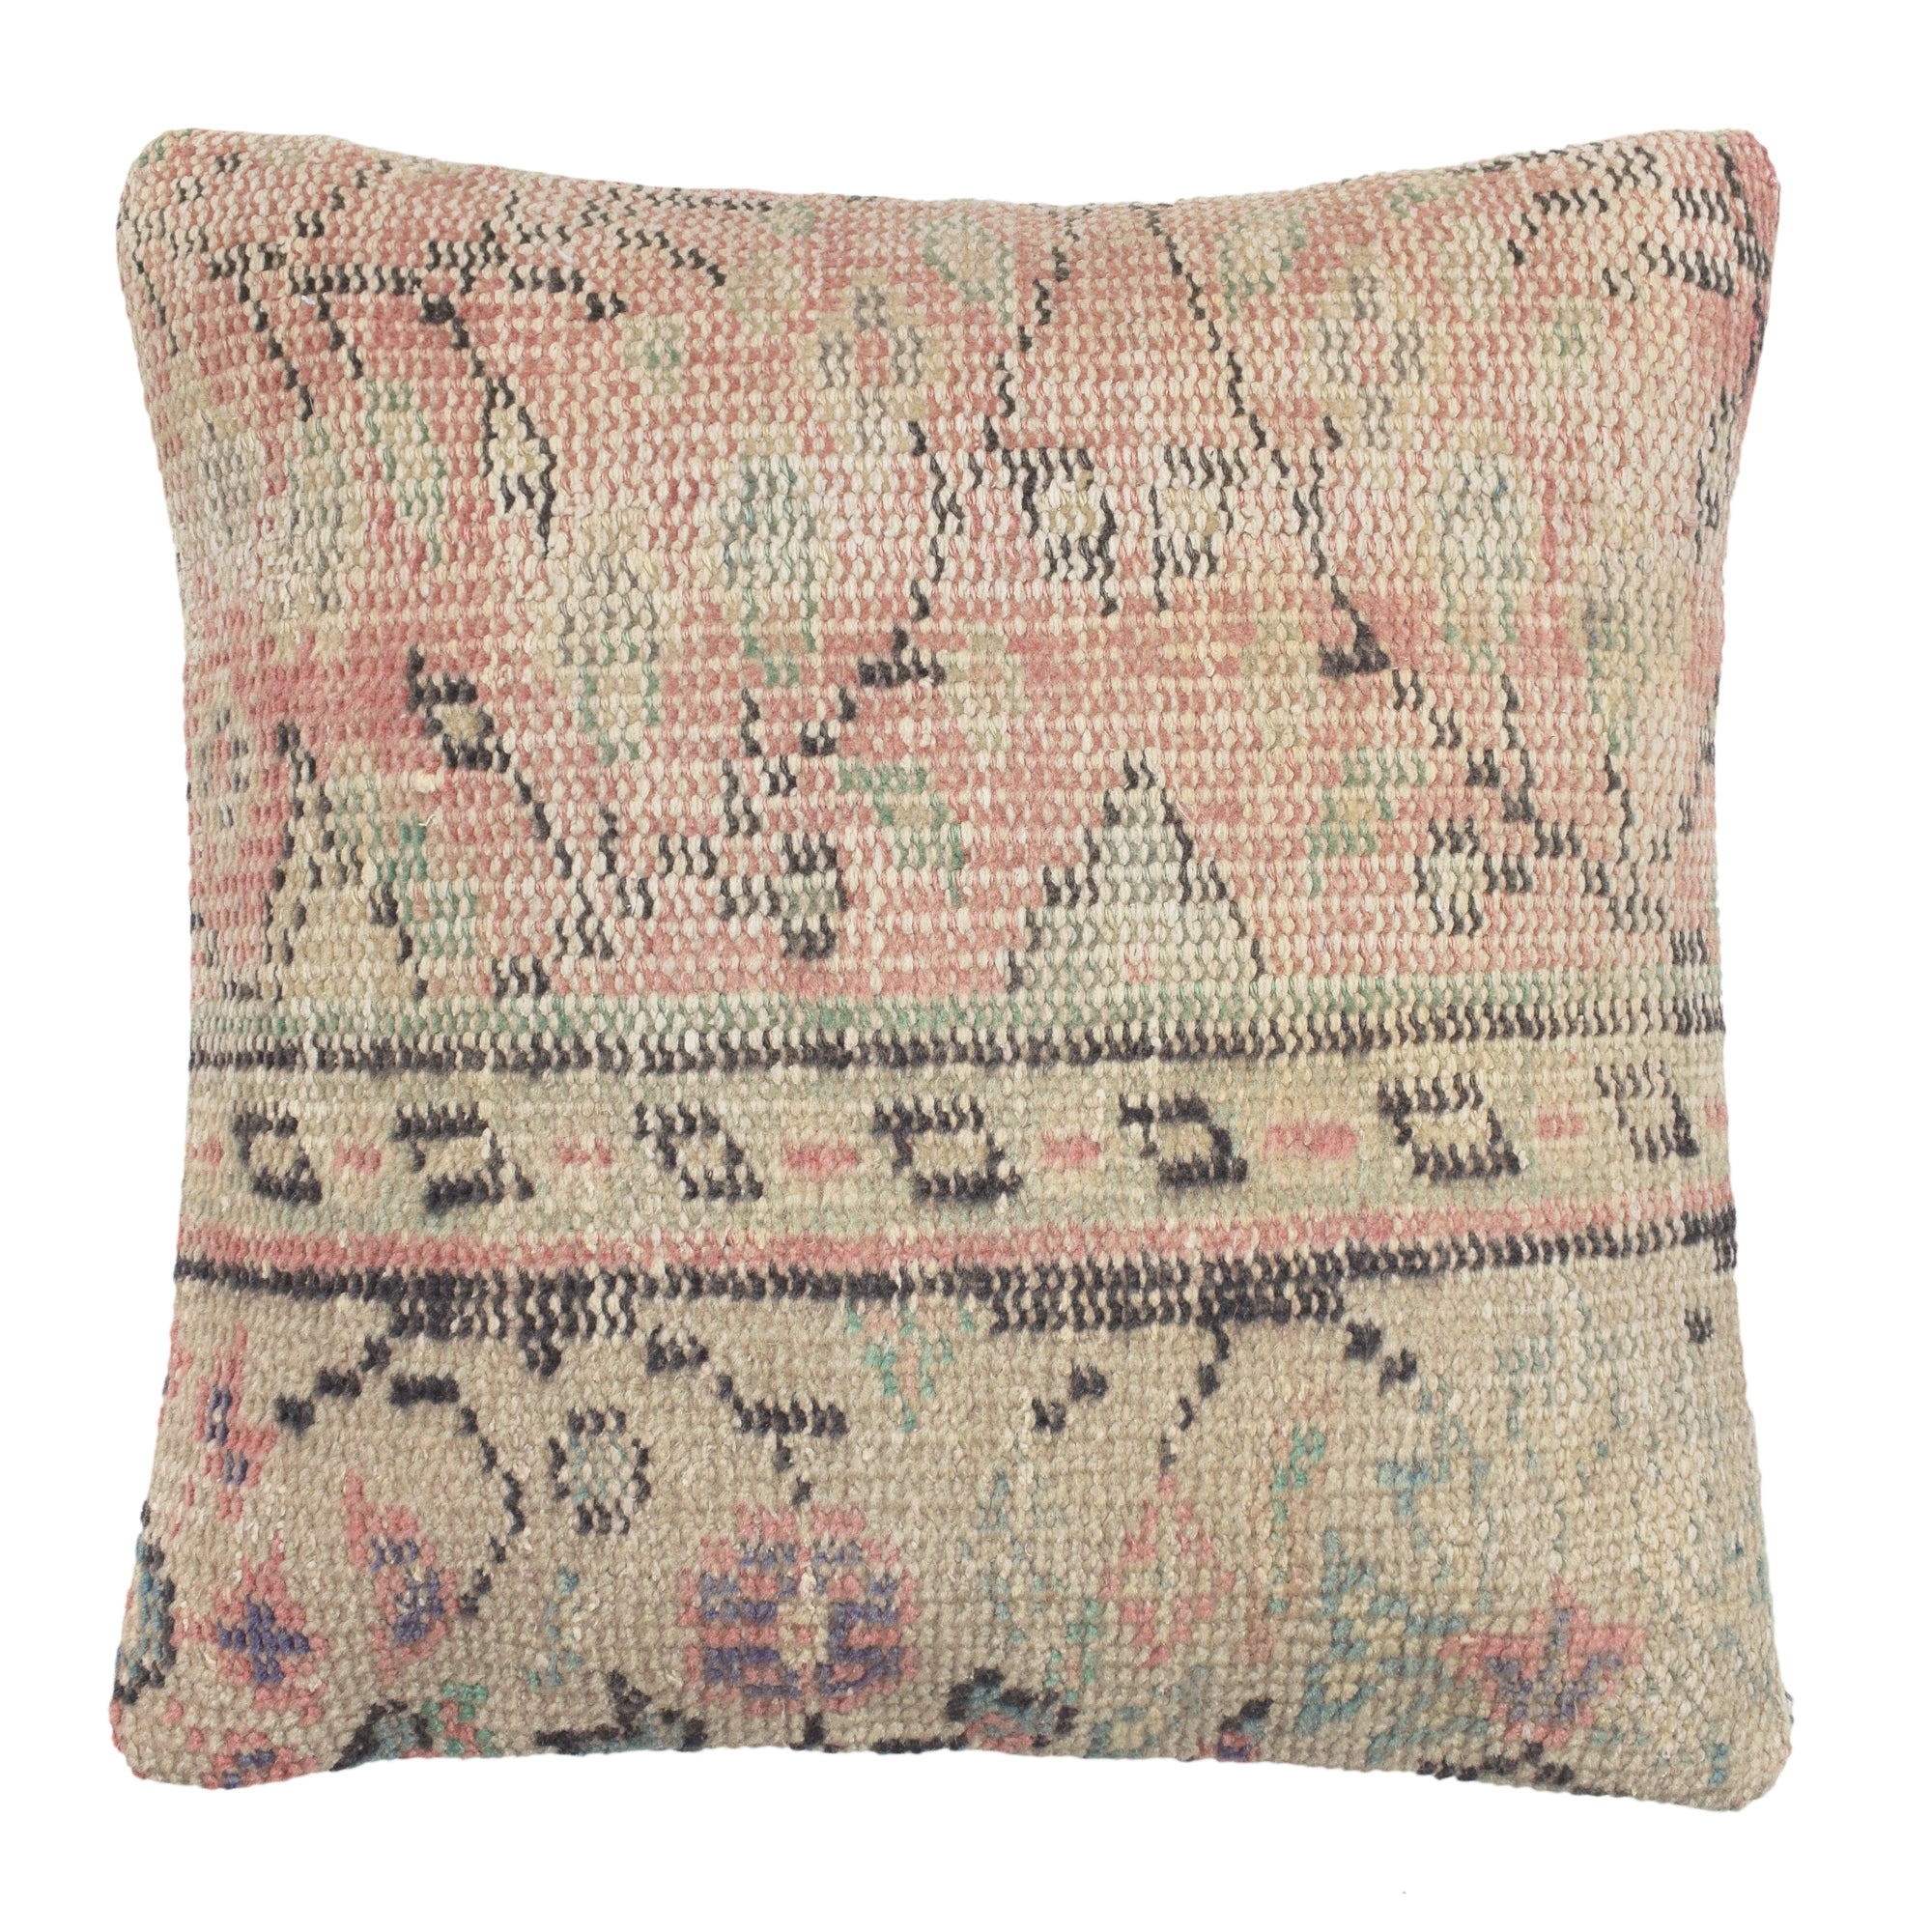 yonder-vintage-kilim-cushion-sage-green-peaach-floral